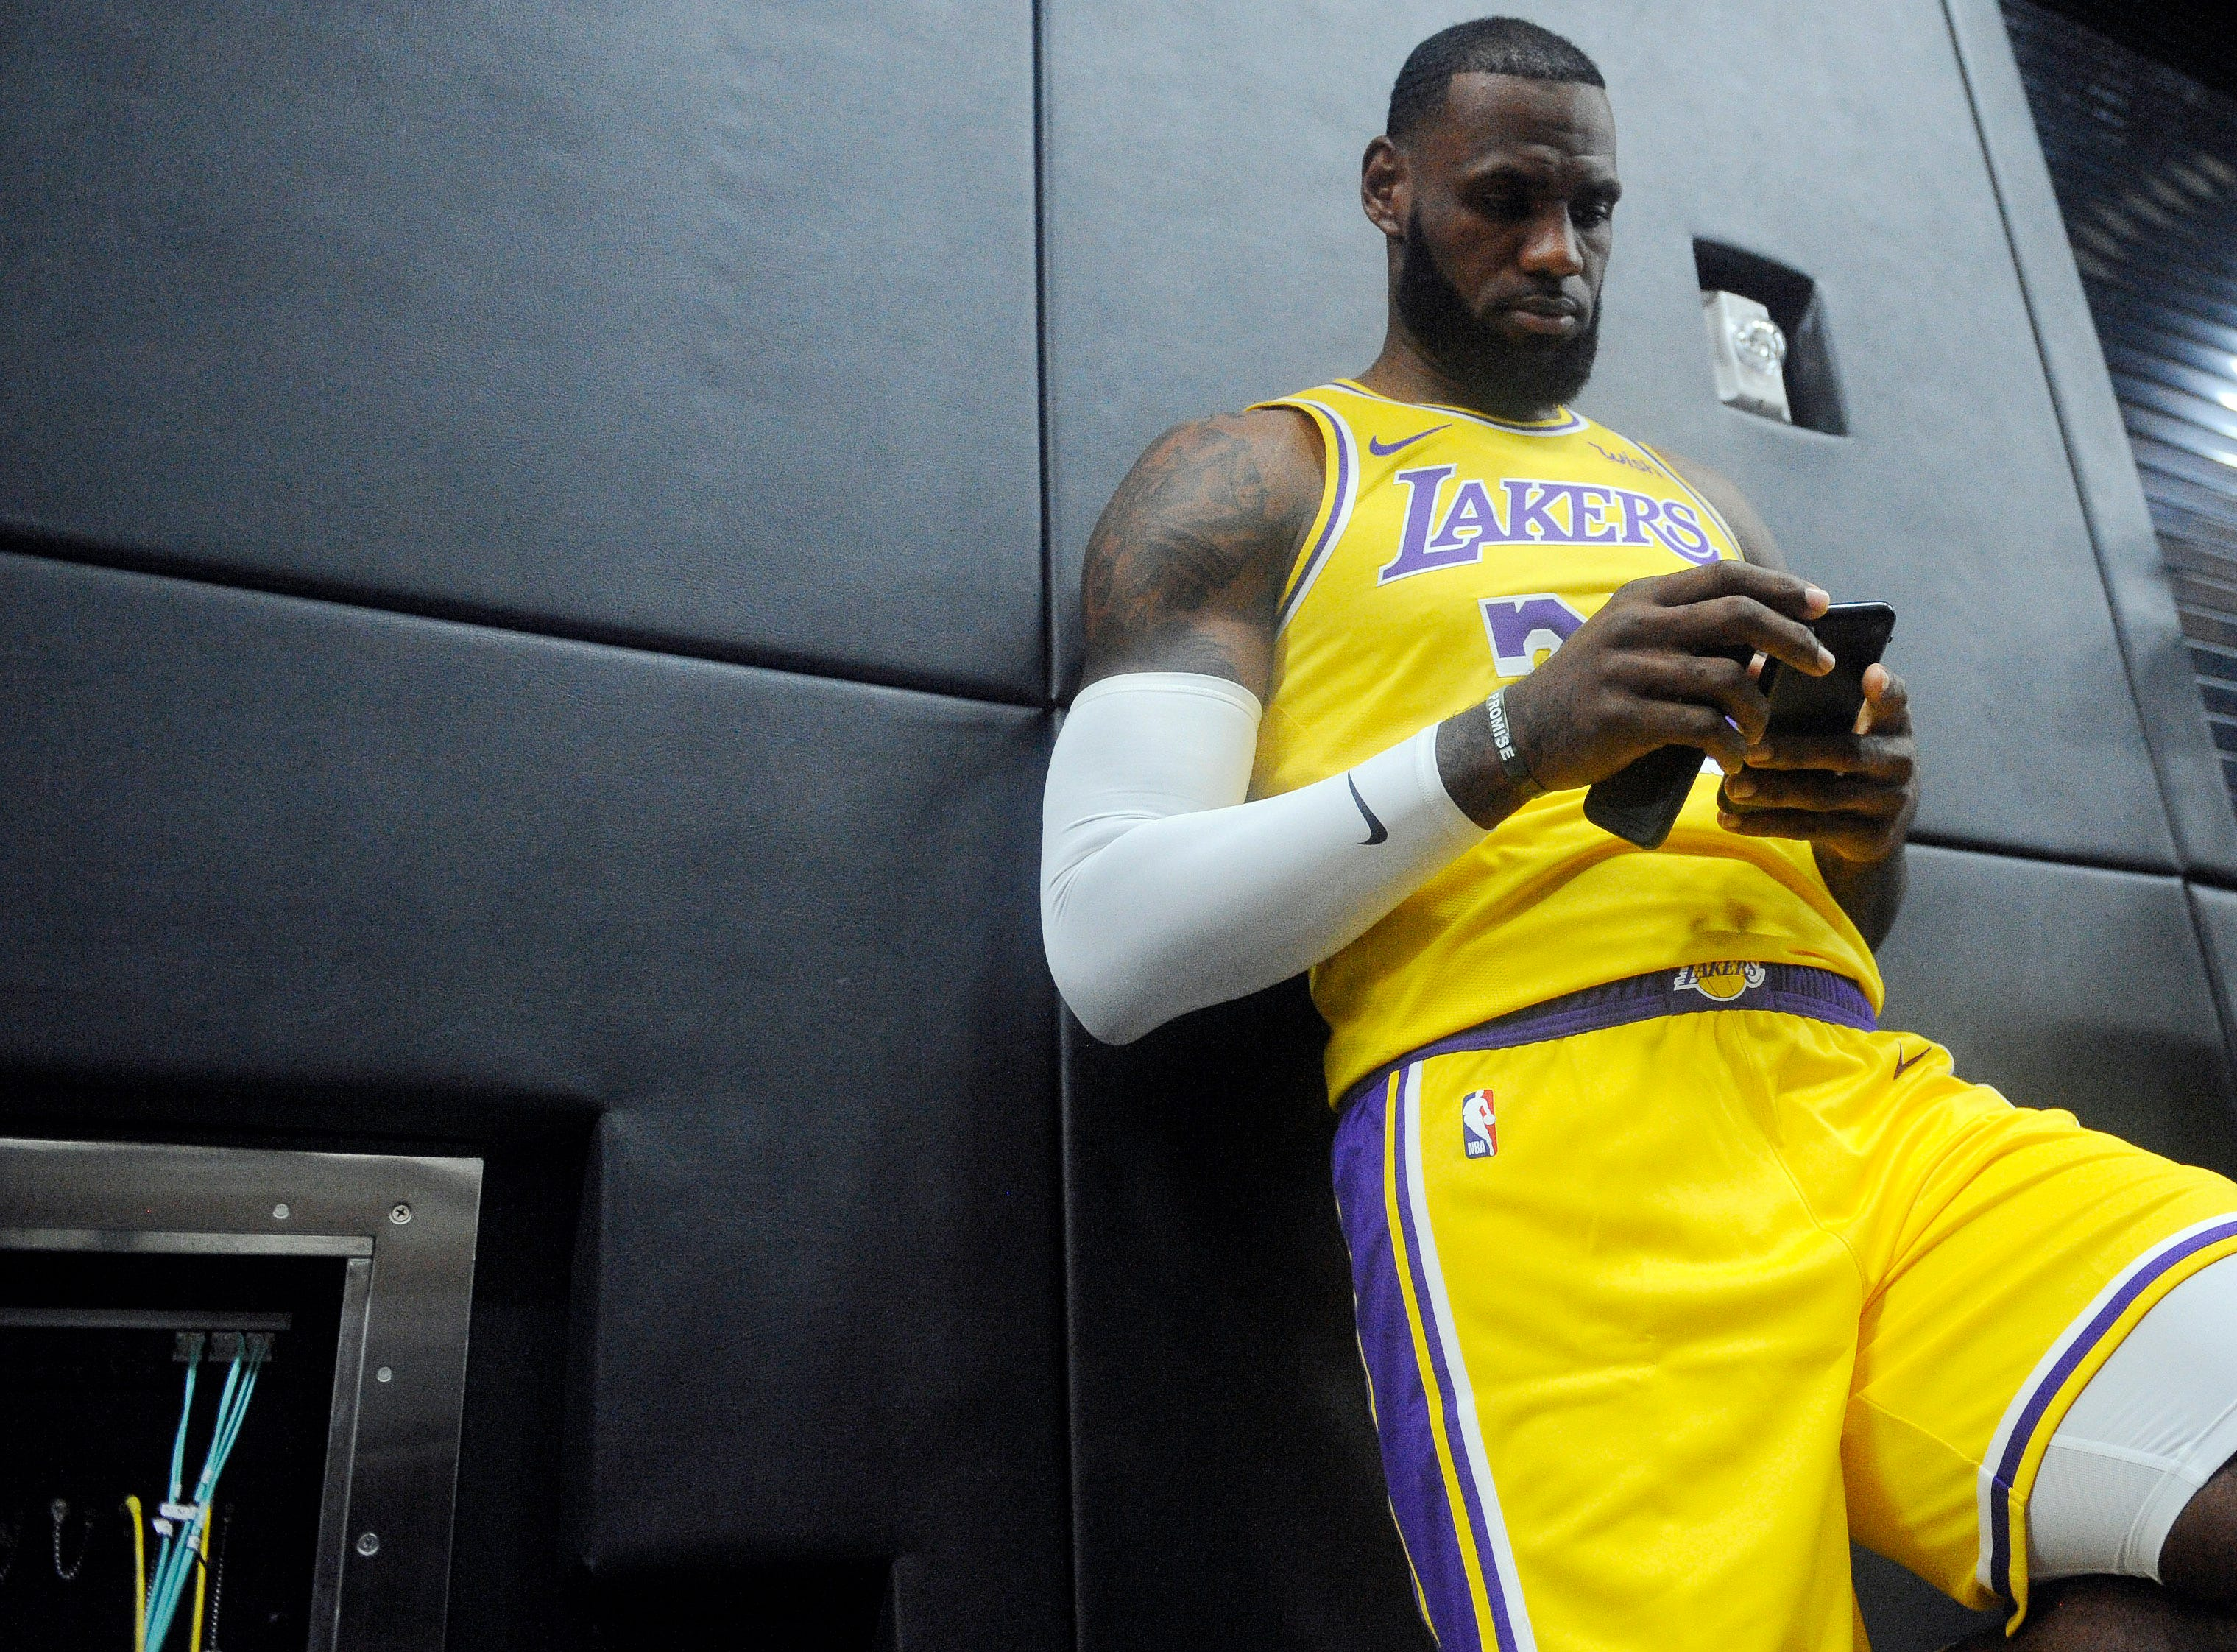 LeBron James checks his cellphone before speaking to reporters in Los Angeles during NBA Media Day.